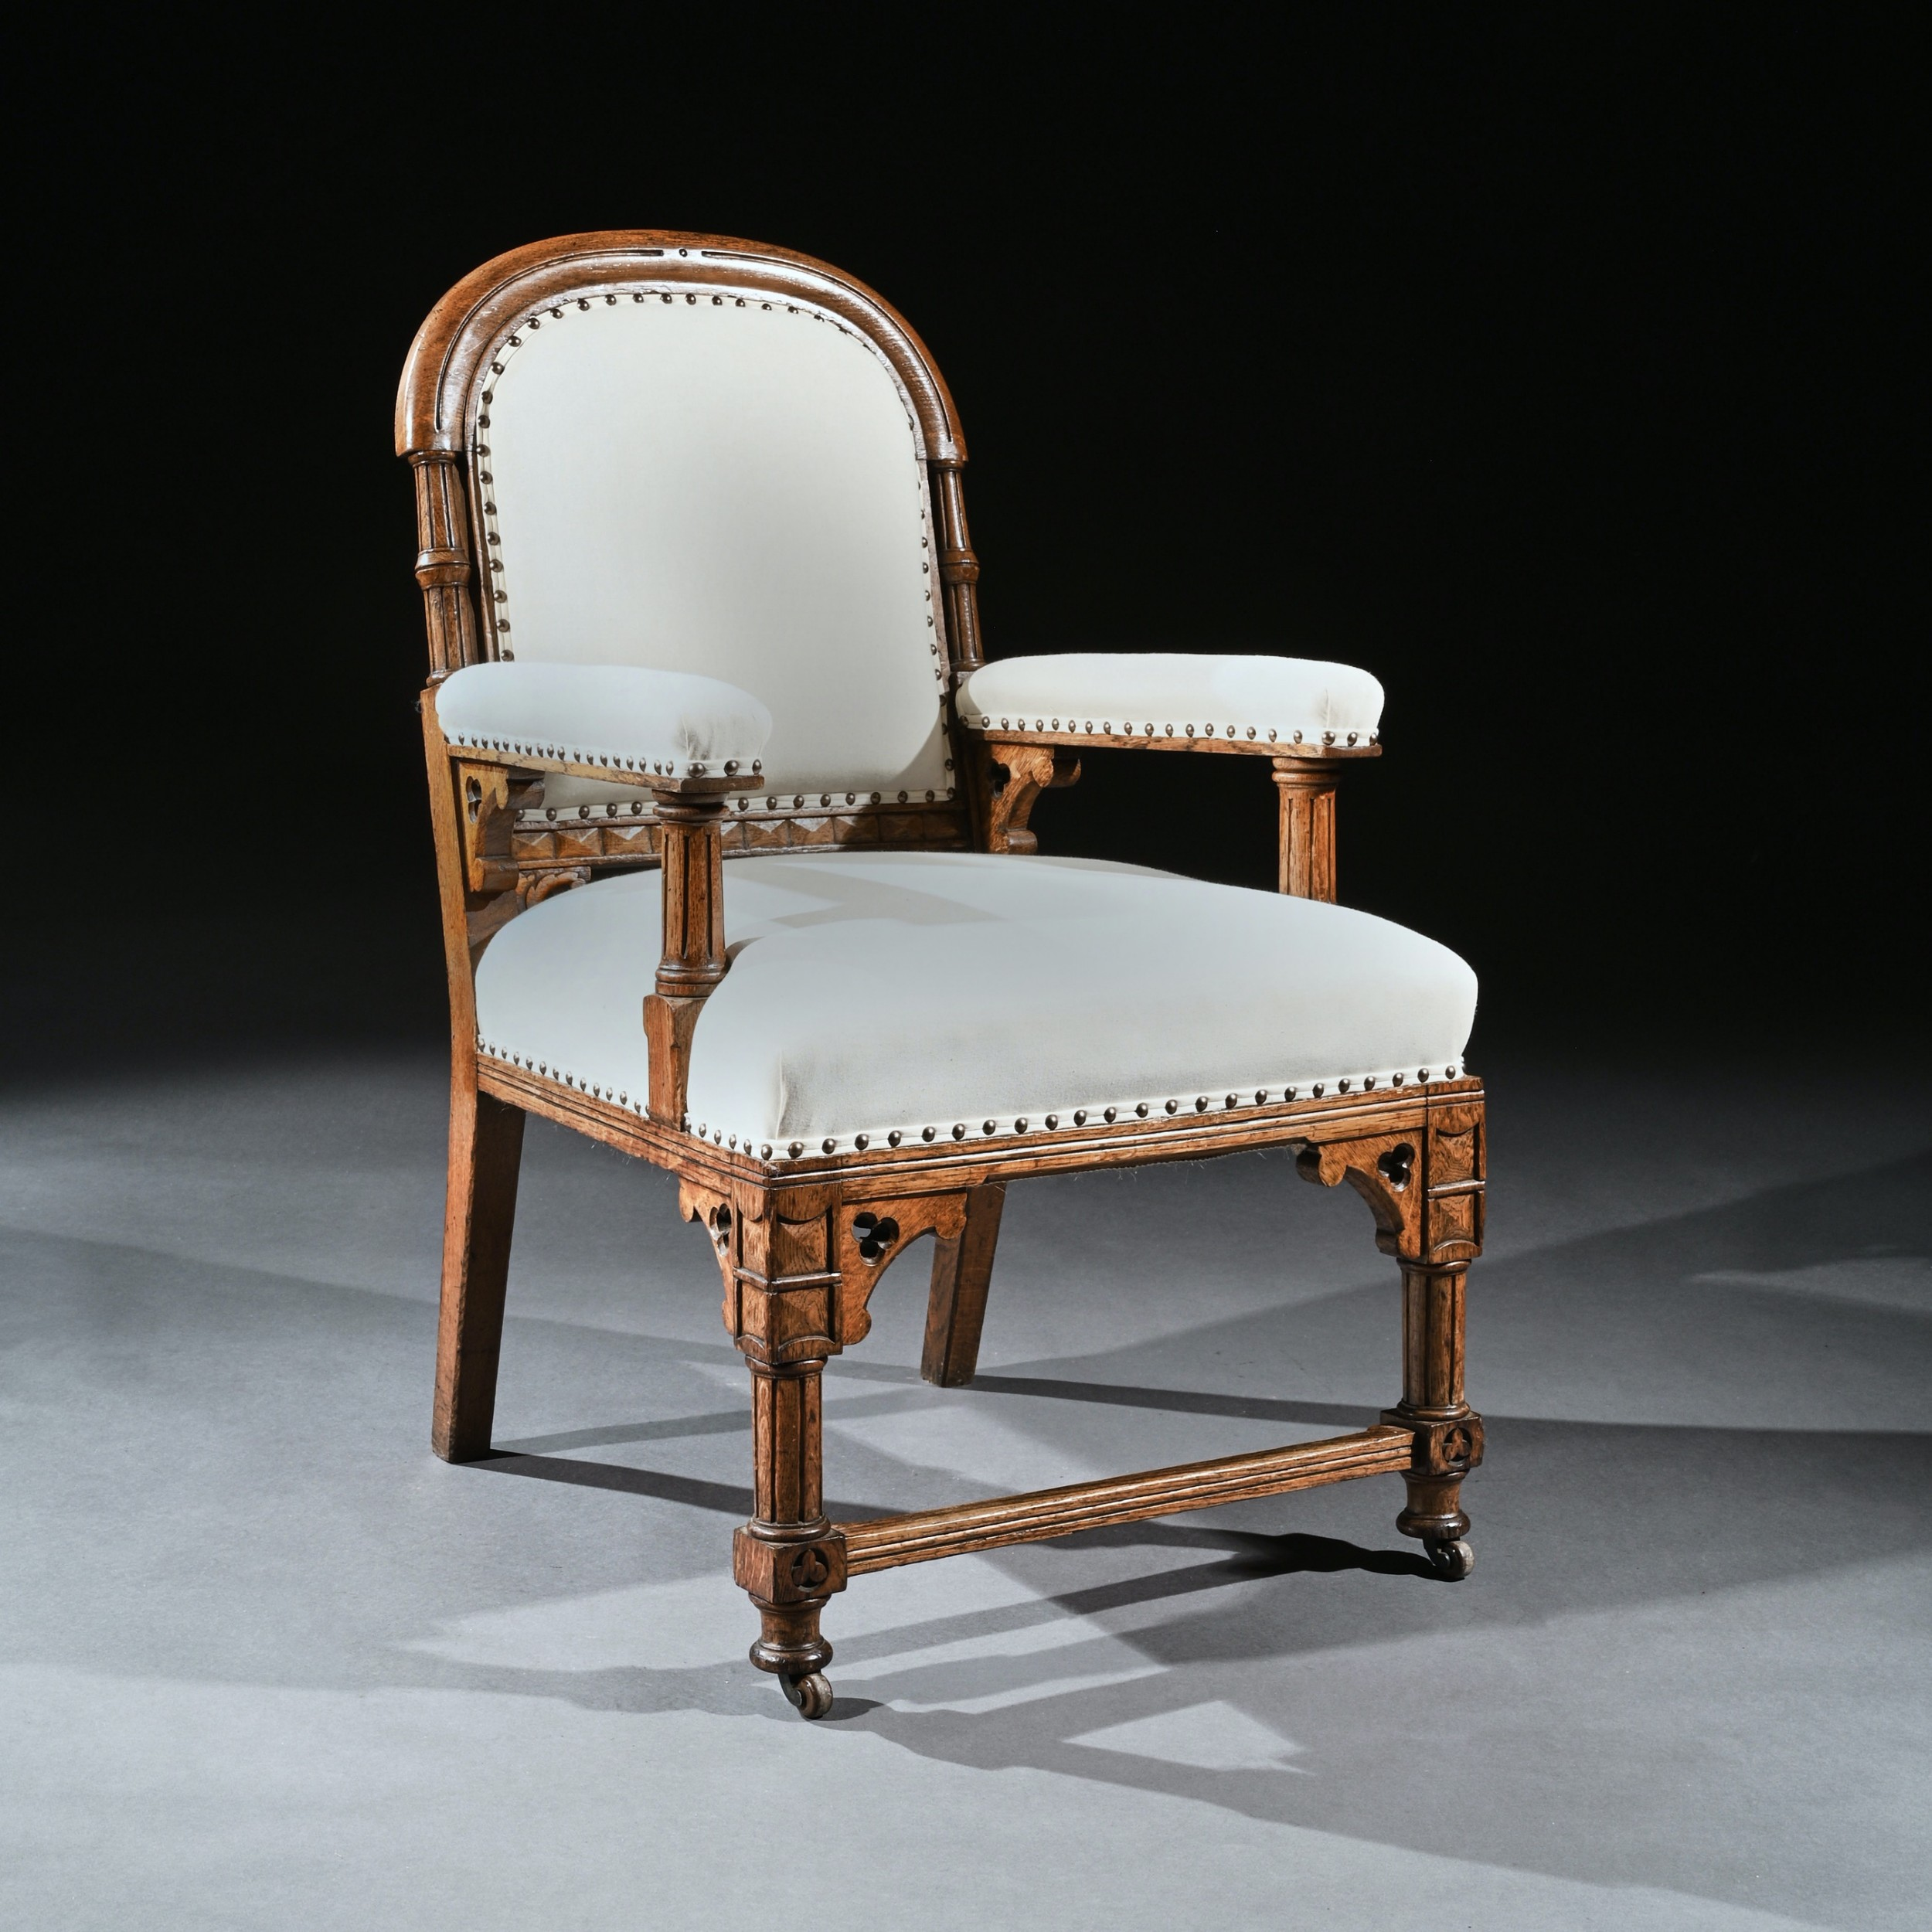 19th century oak gothic armchair by g tilley of birmingham